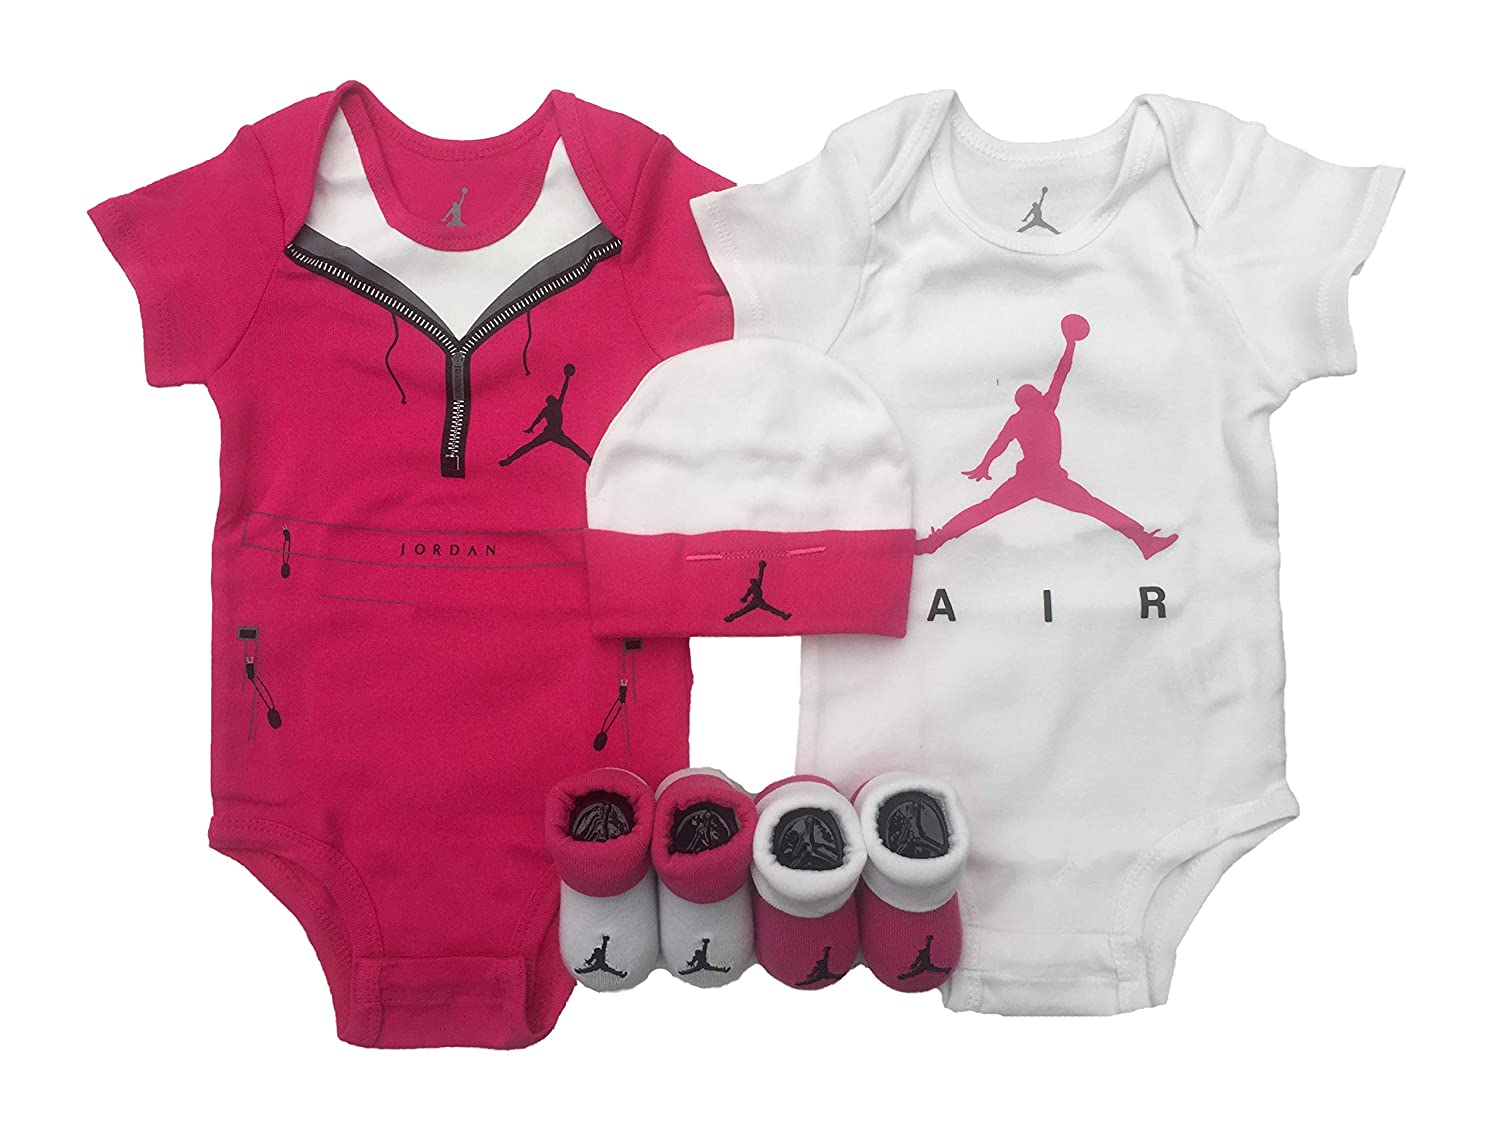 f40d966d7c6 Amazon.com: NIKE Air Jordan Infant Boys Girls 5-Piece Set (0-6 Months,  White(IGSPJ0915-3933)/Vivid Pink): Clothing